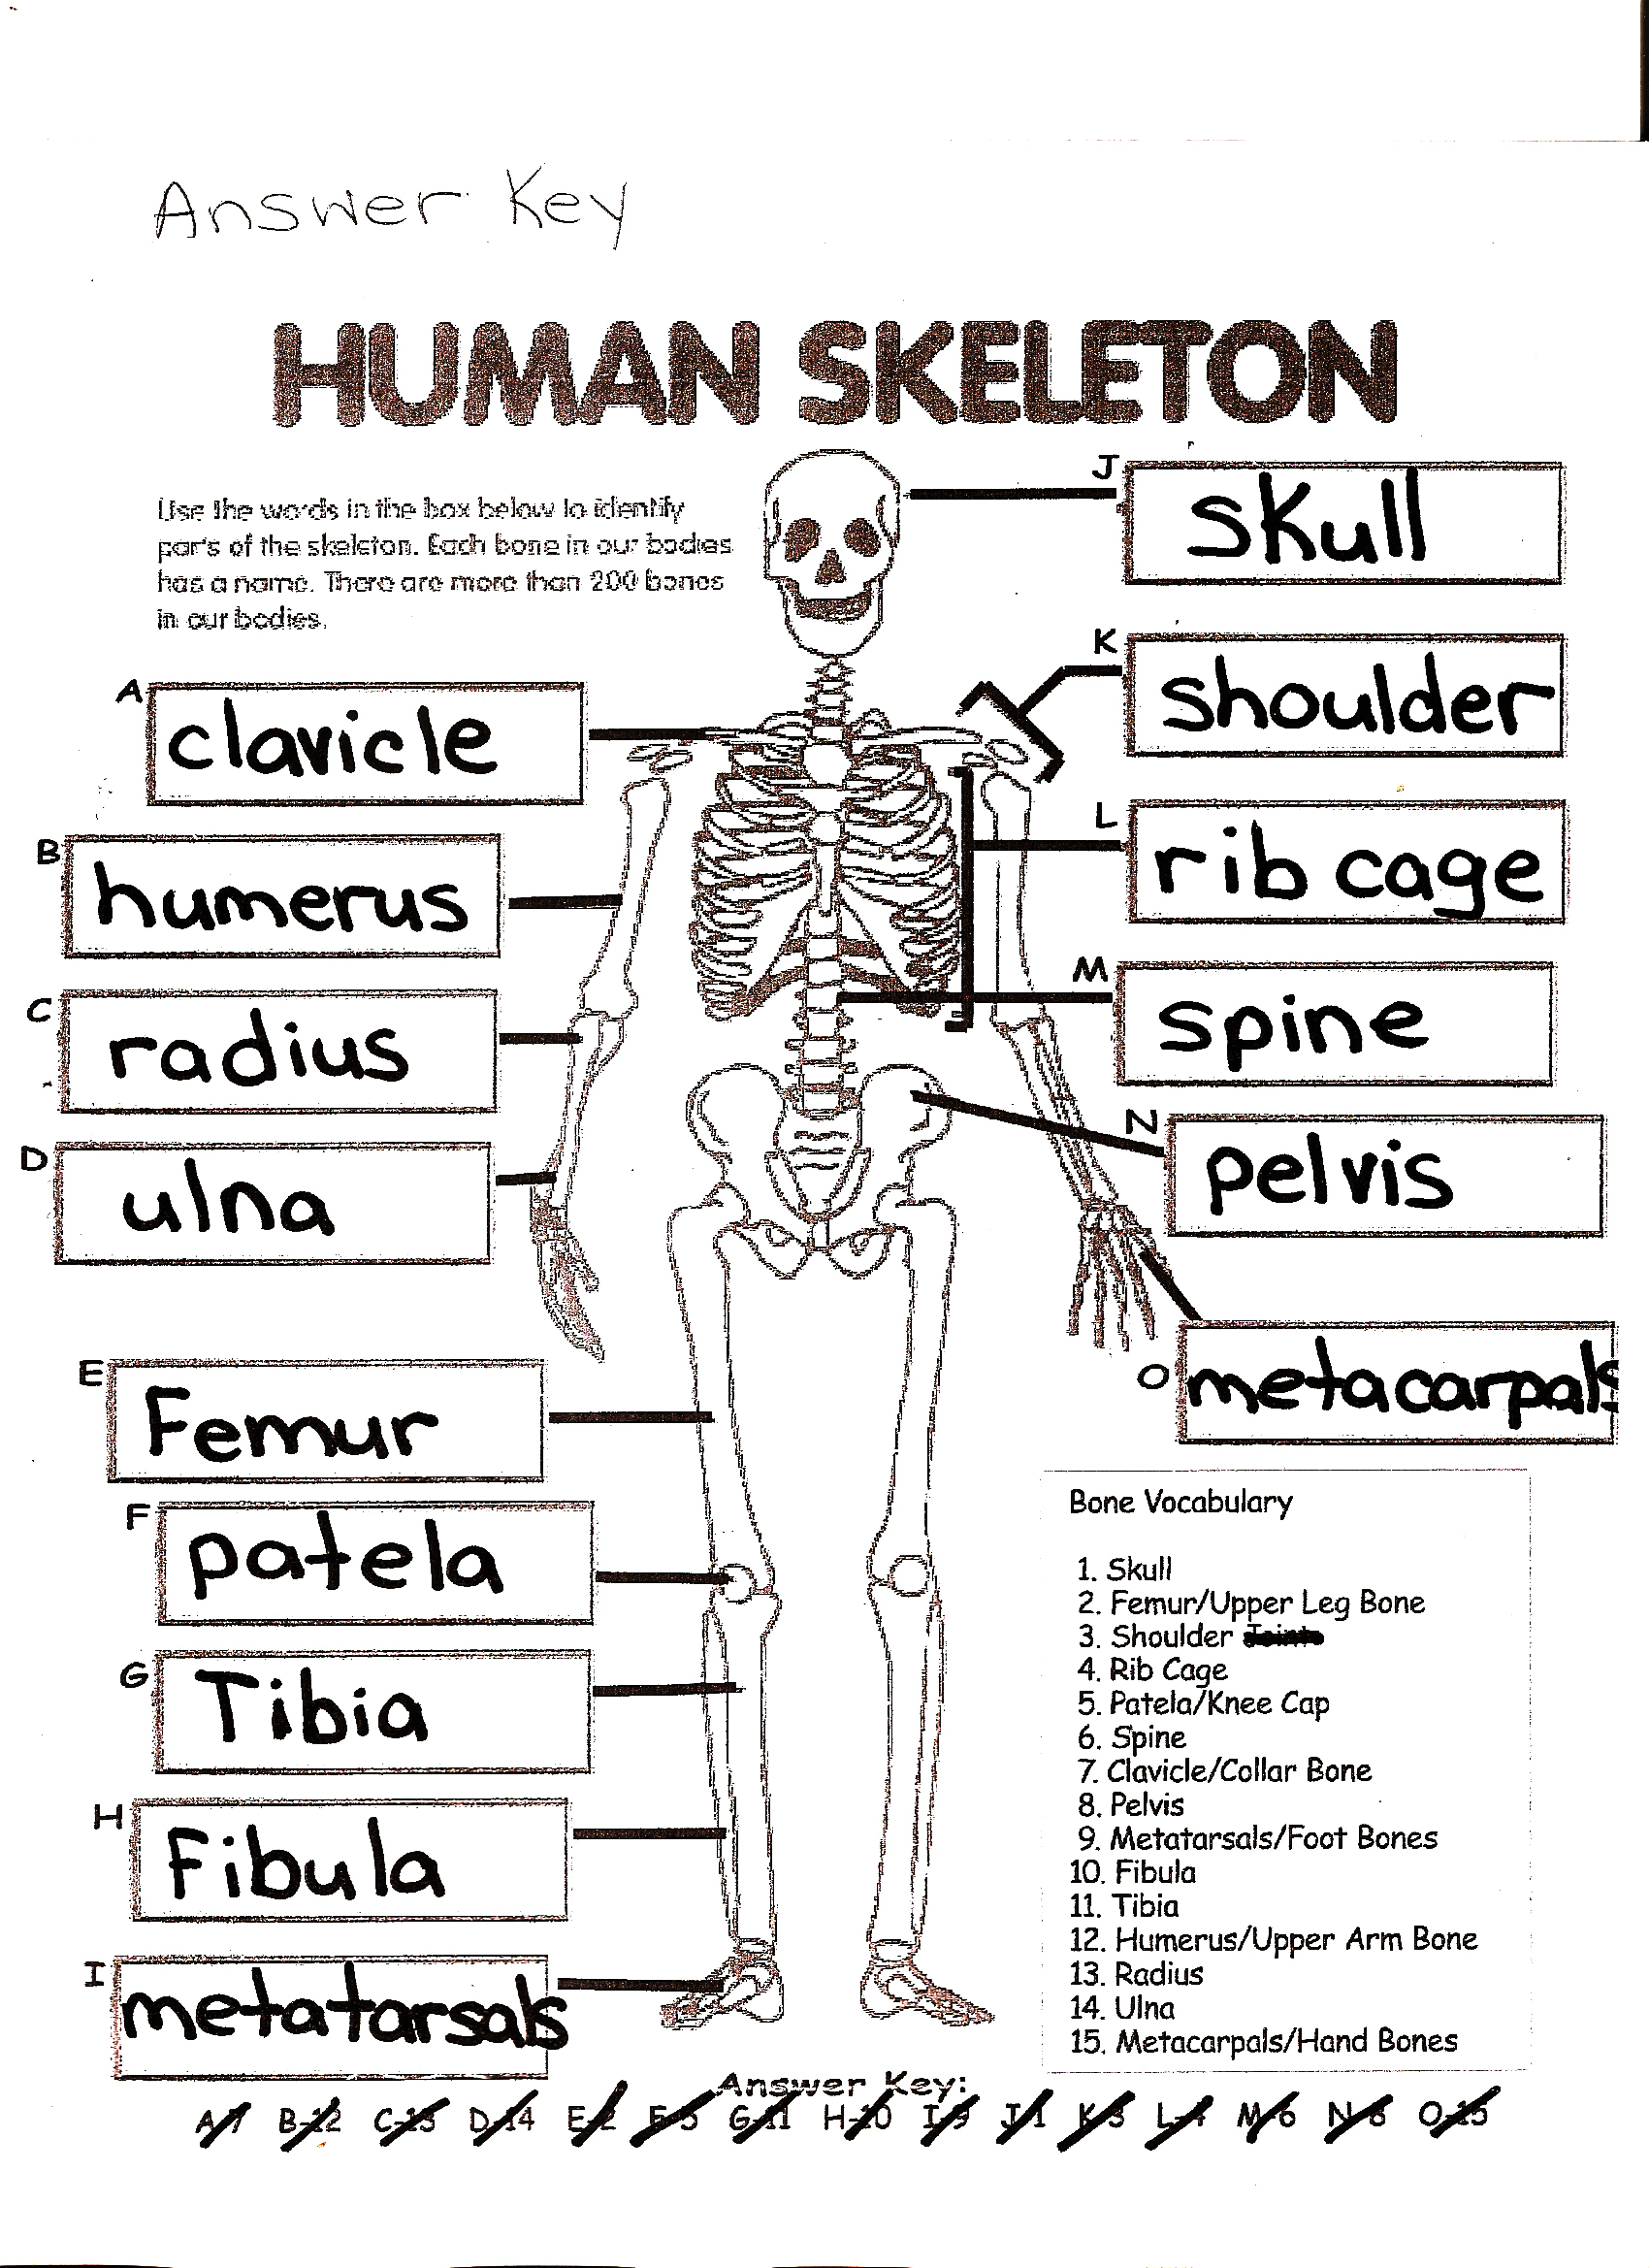 Skeletal System Crossword Puzzle Answers | Healthy Hesongbai - Skeletal System Crossword Puzzle Printables